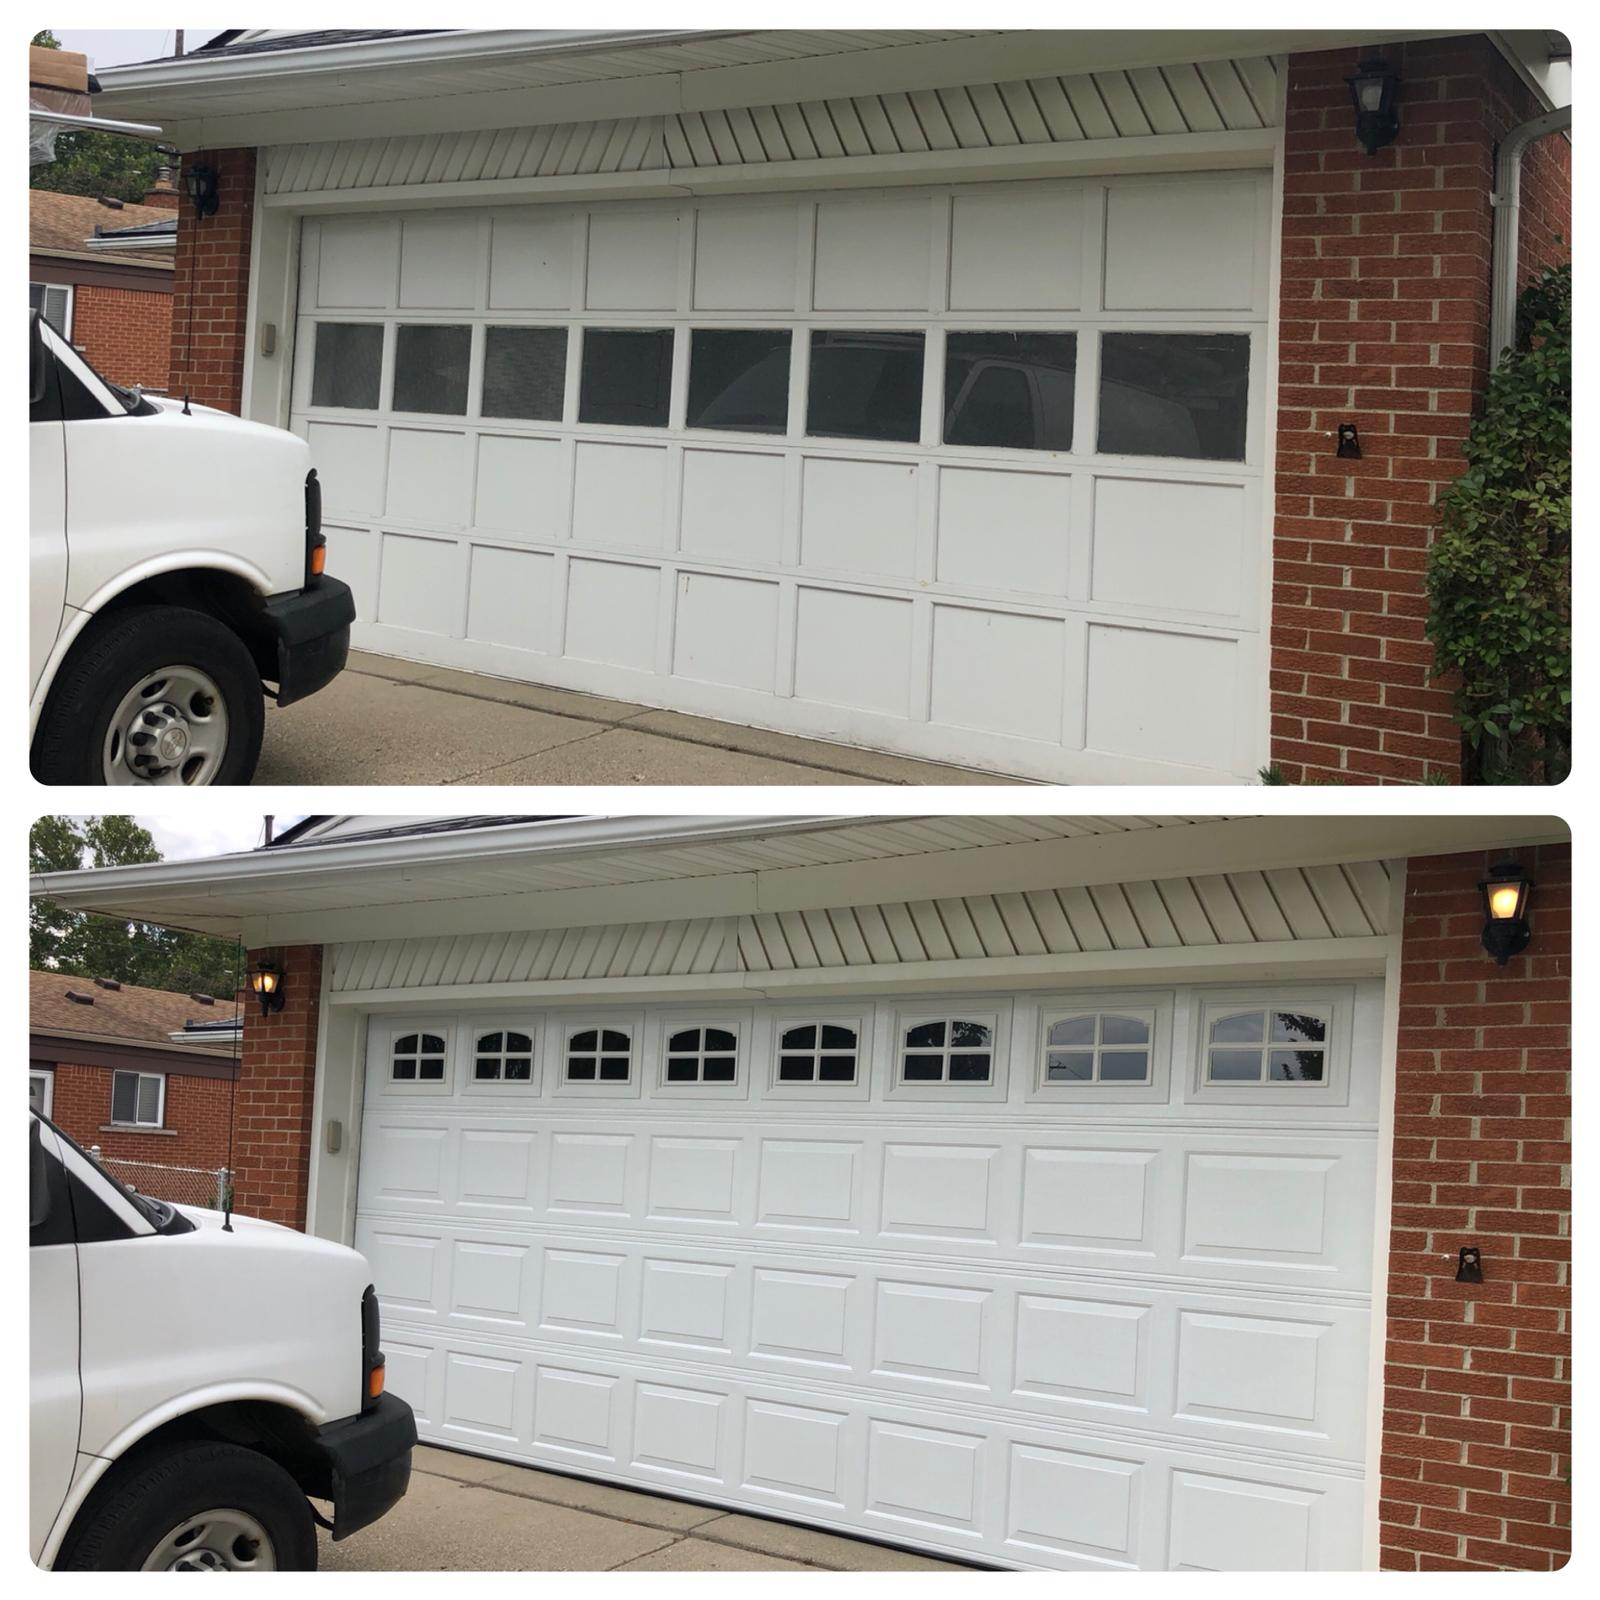 Garage door updgrade installed!